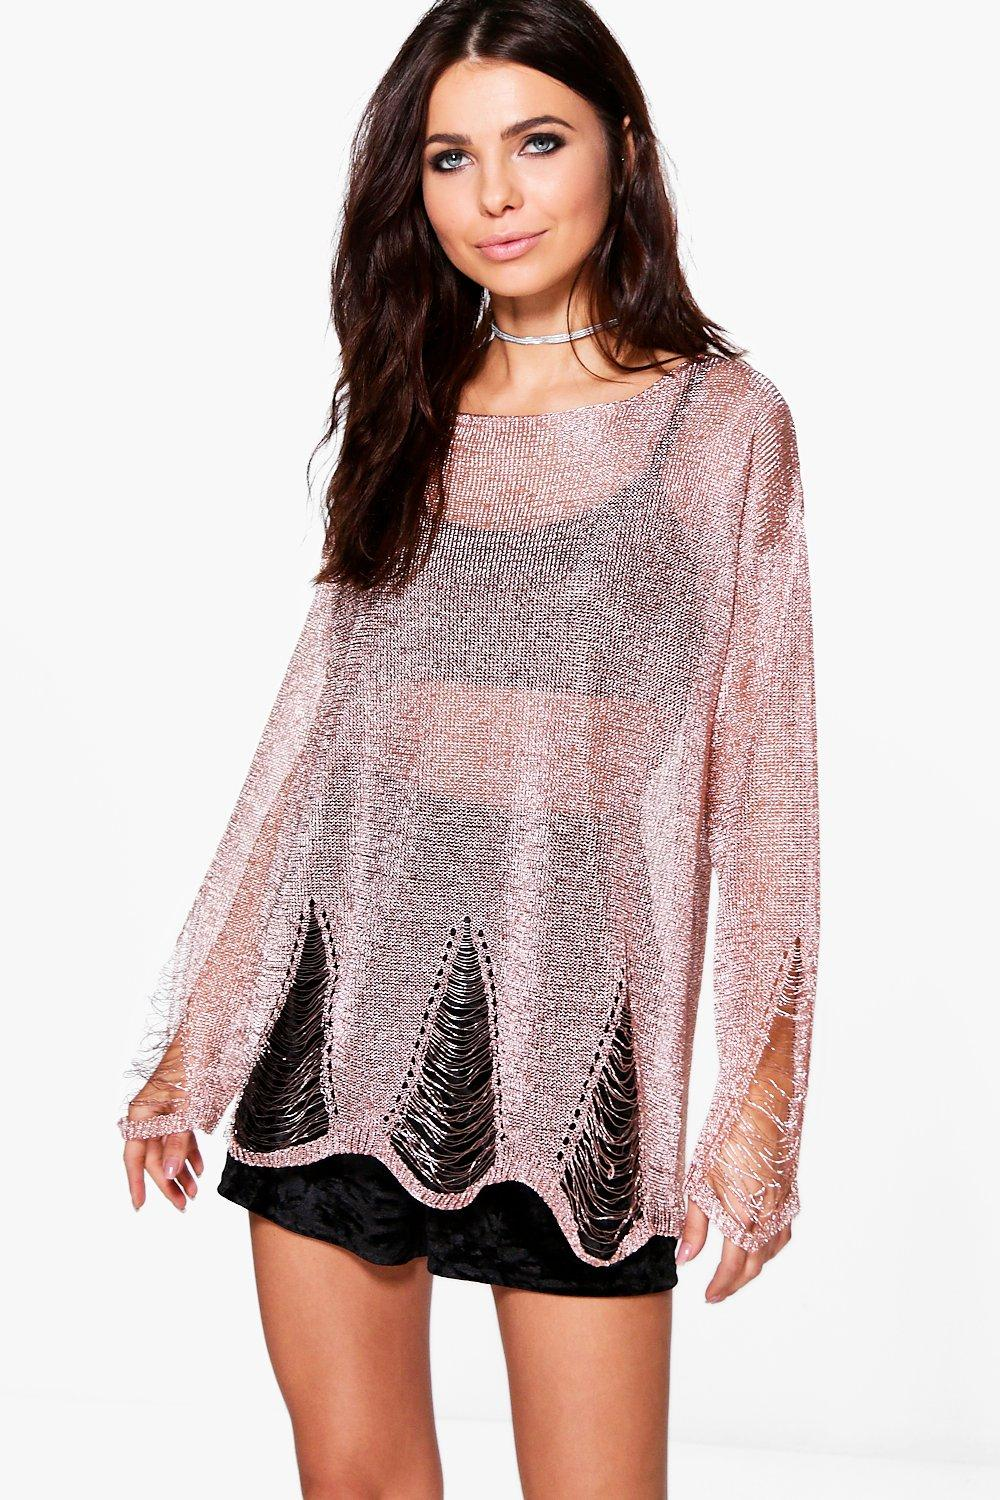 Jessica Distressed Metallic Jumper